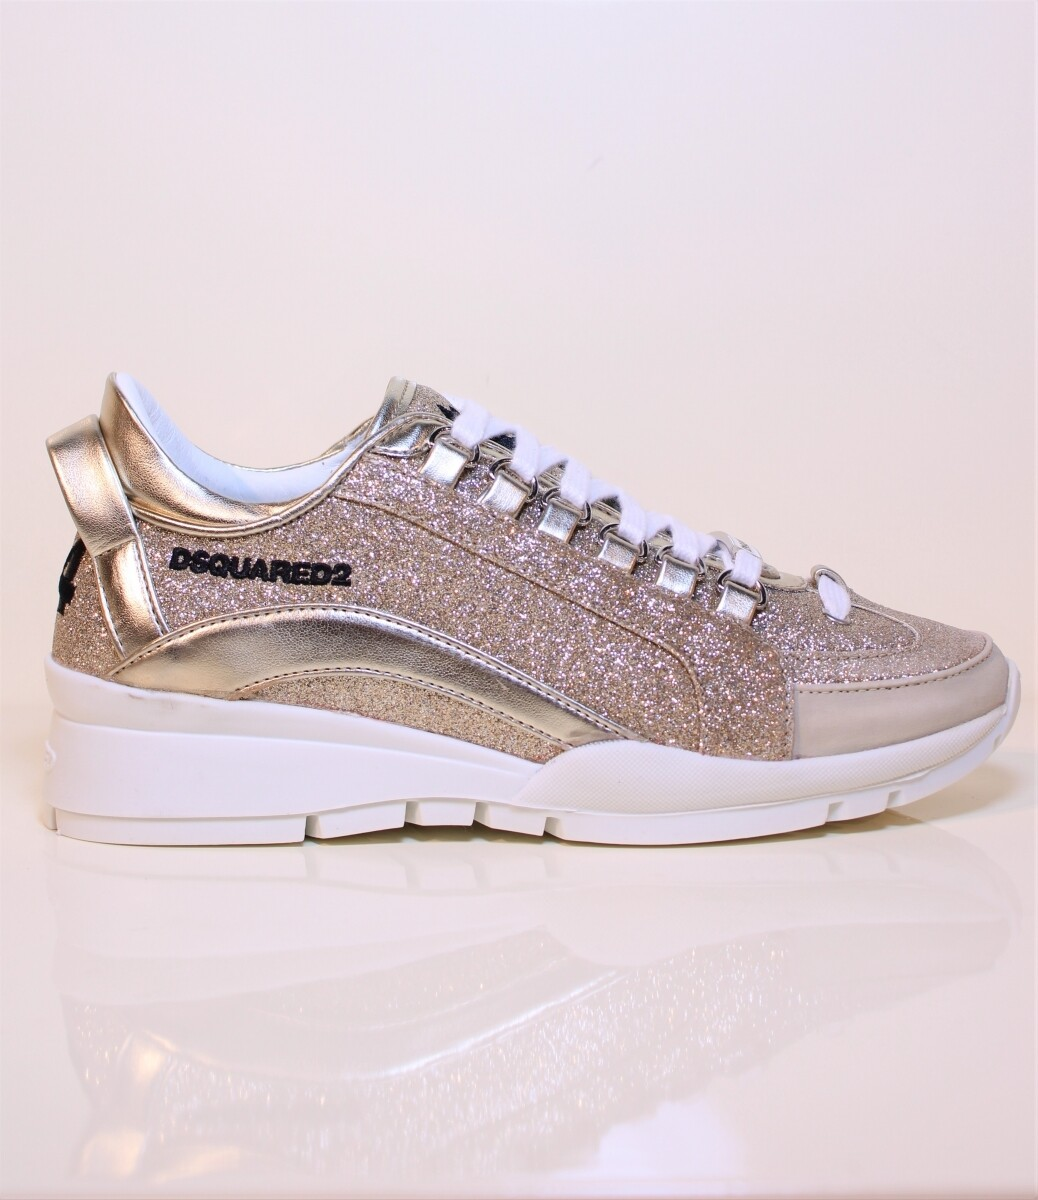 Dsquared2 | Sneaker | SNW05050 29203796 goud